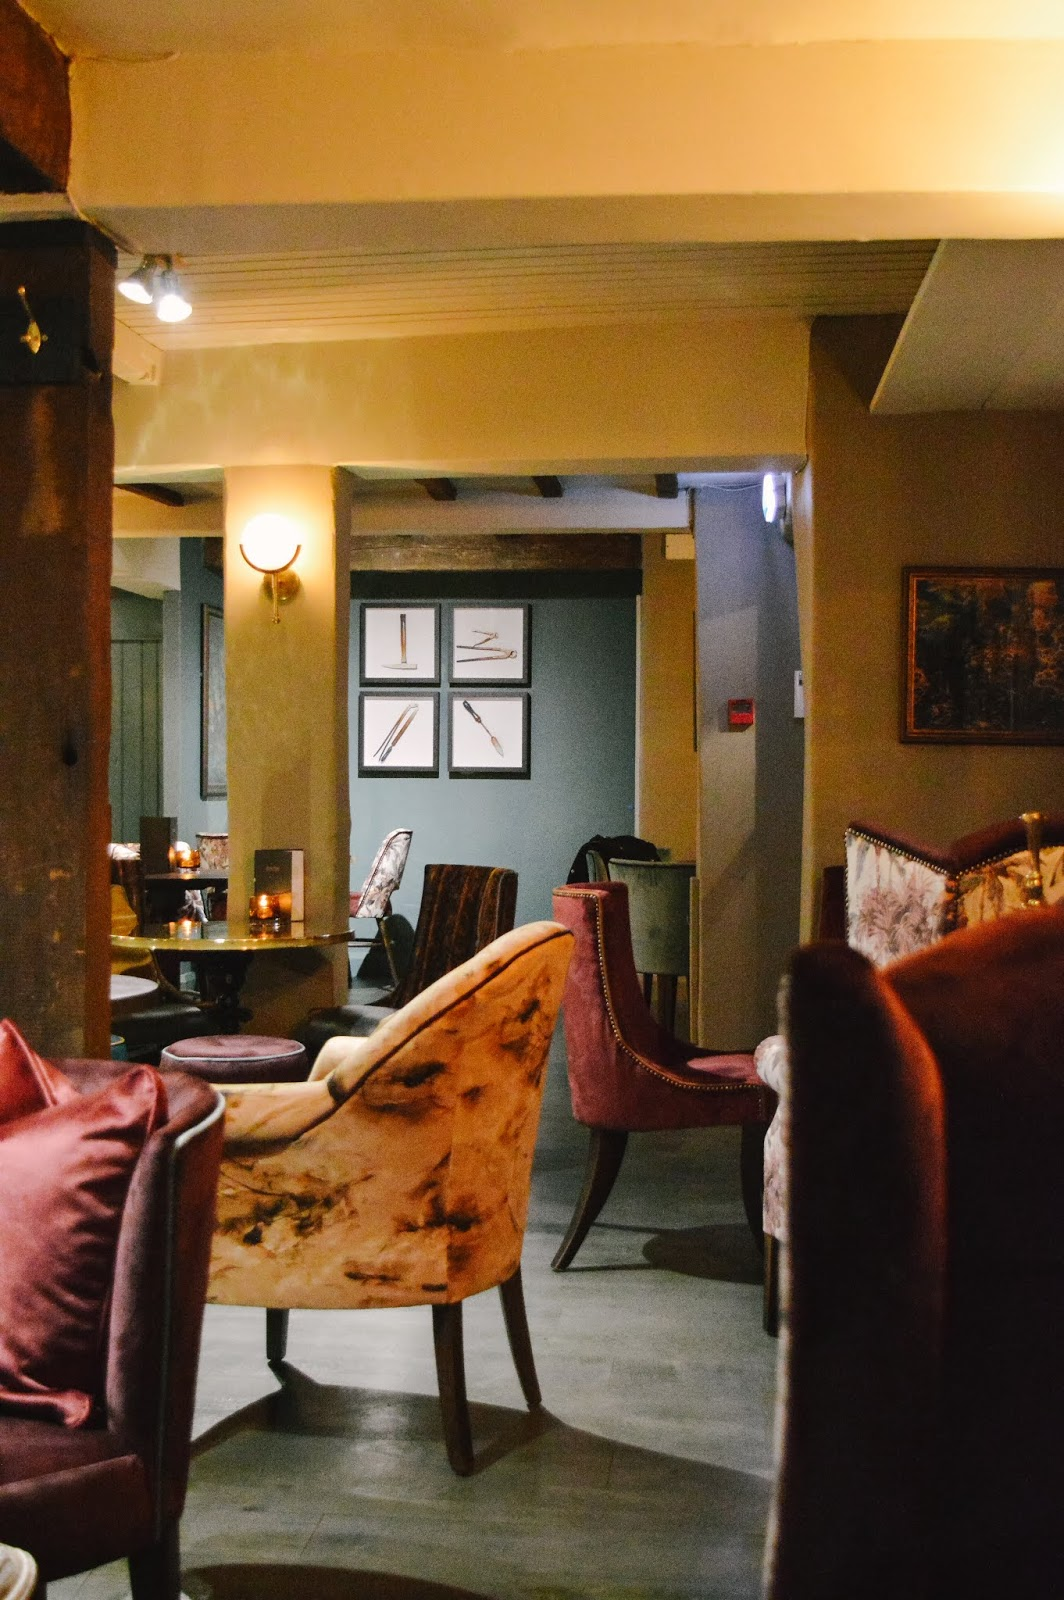 The Old Forge in Otterbourne has recently been redecorated and revamped